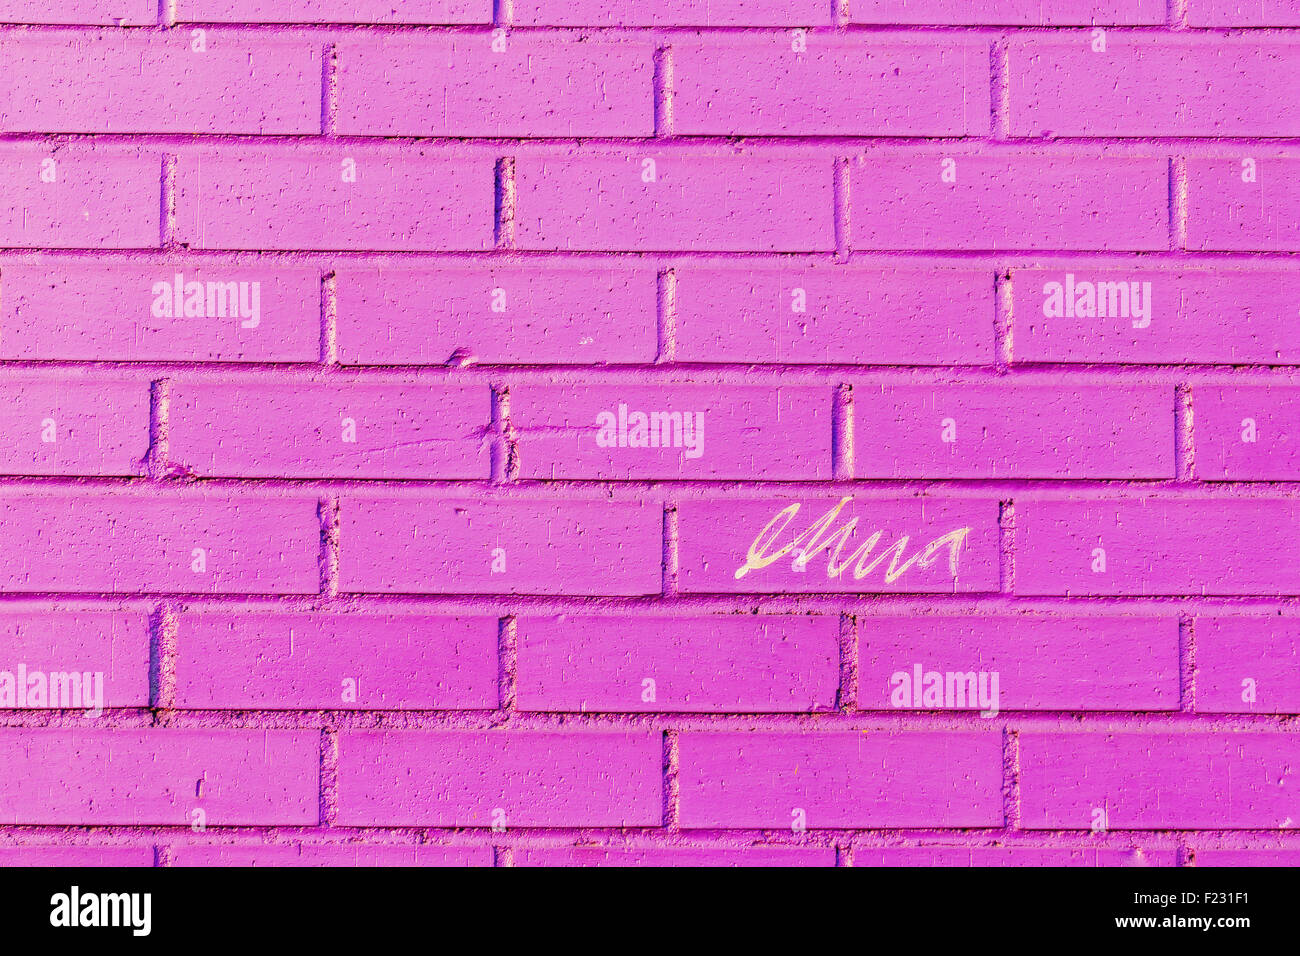 scribble on a pink bricked wall - Stock Image